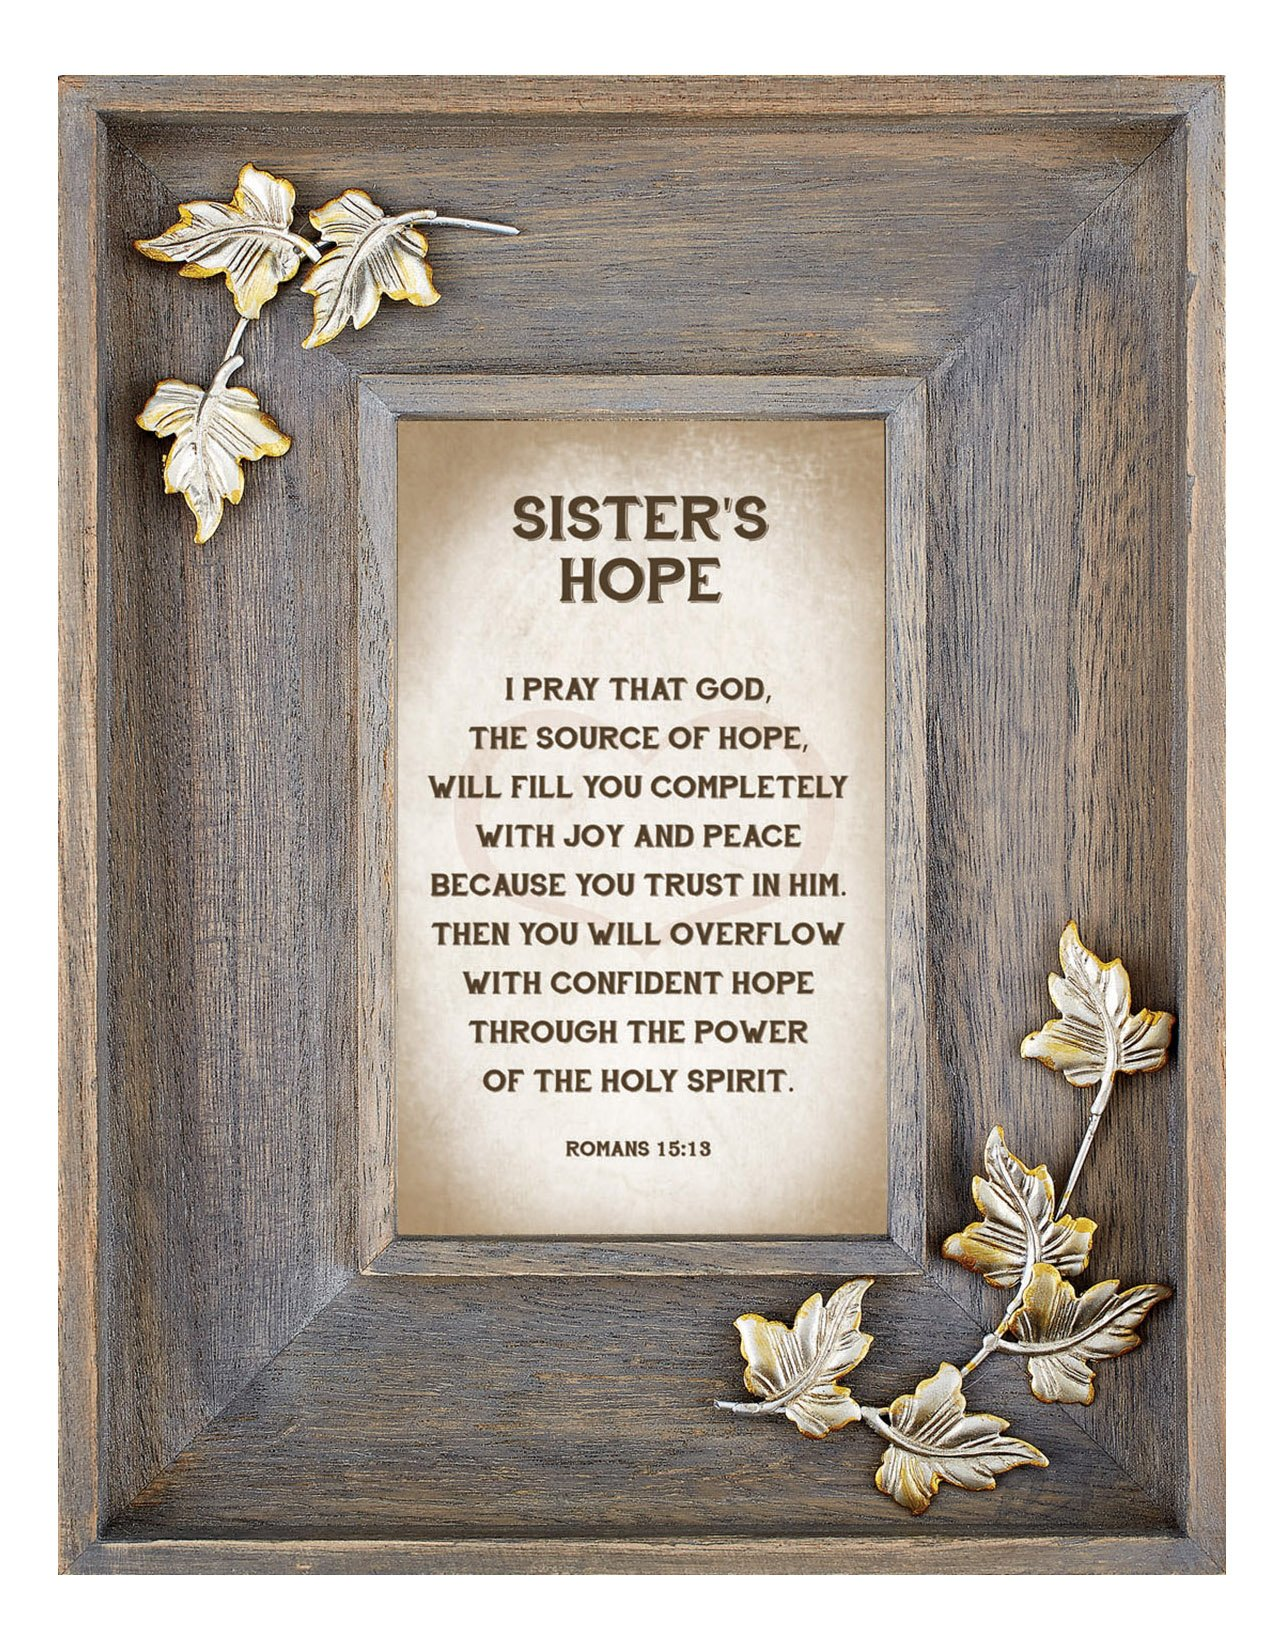 LoveLea Down Home Collection Tabletop Frame, Sister's Hope